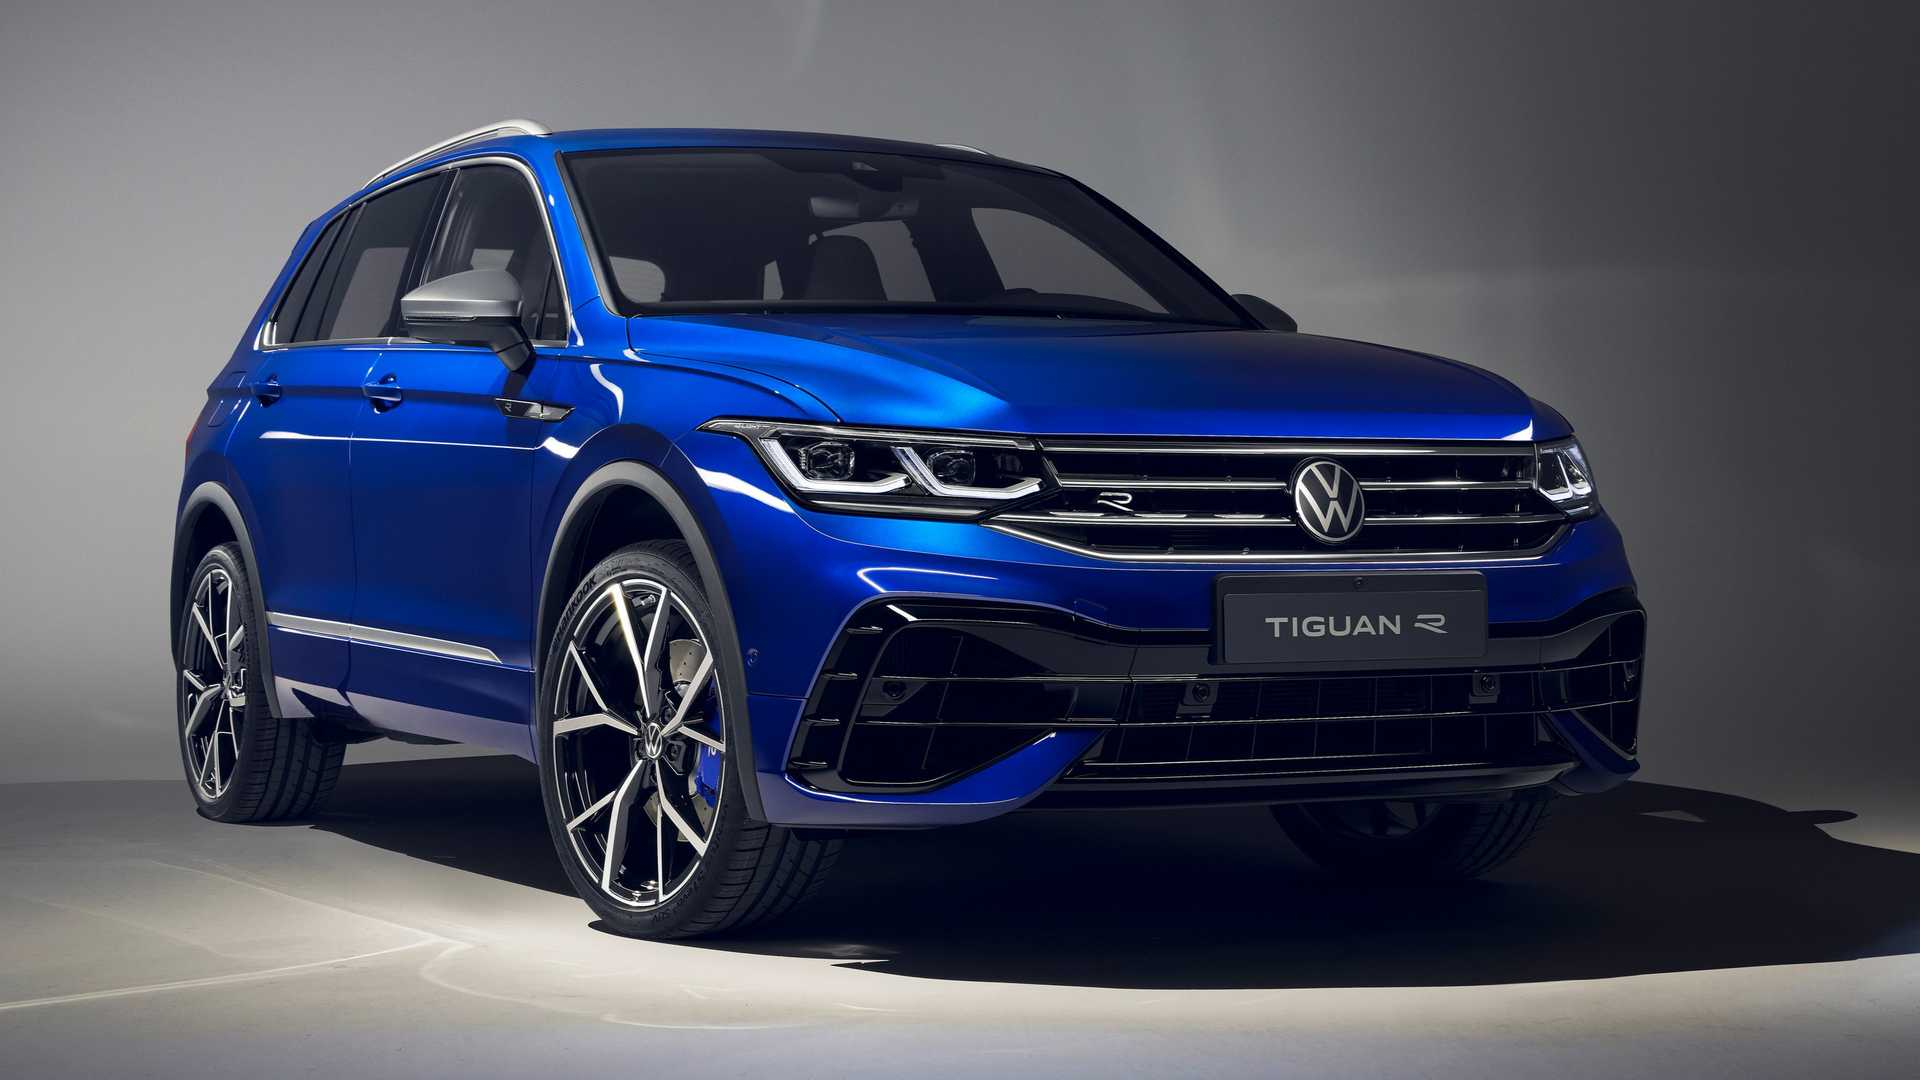 2021 VW Tiguan Videos Show Extended Lineup With eHybrid ...